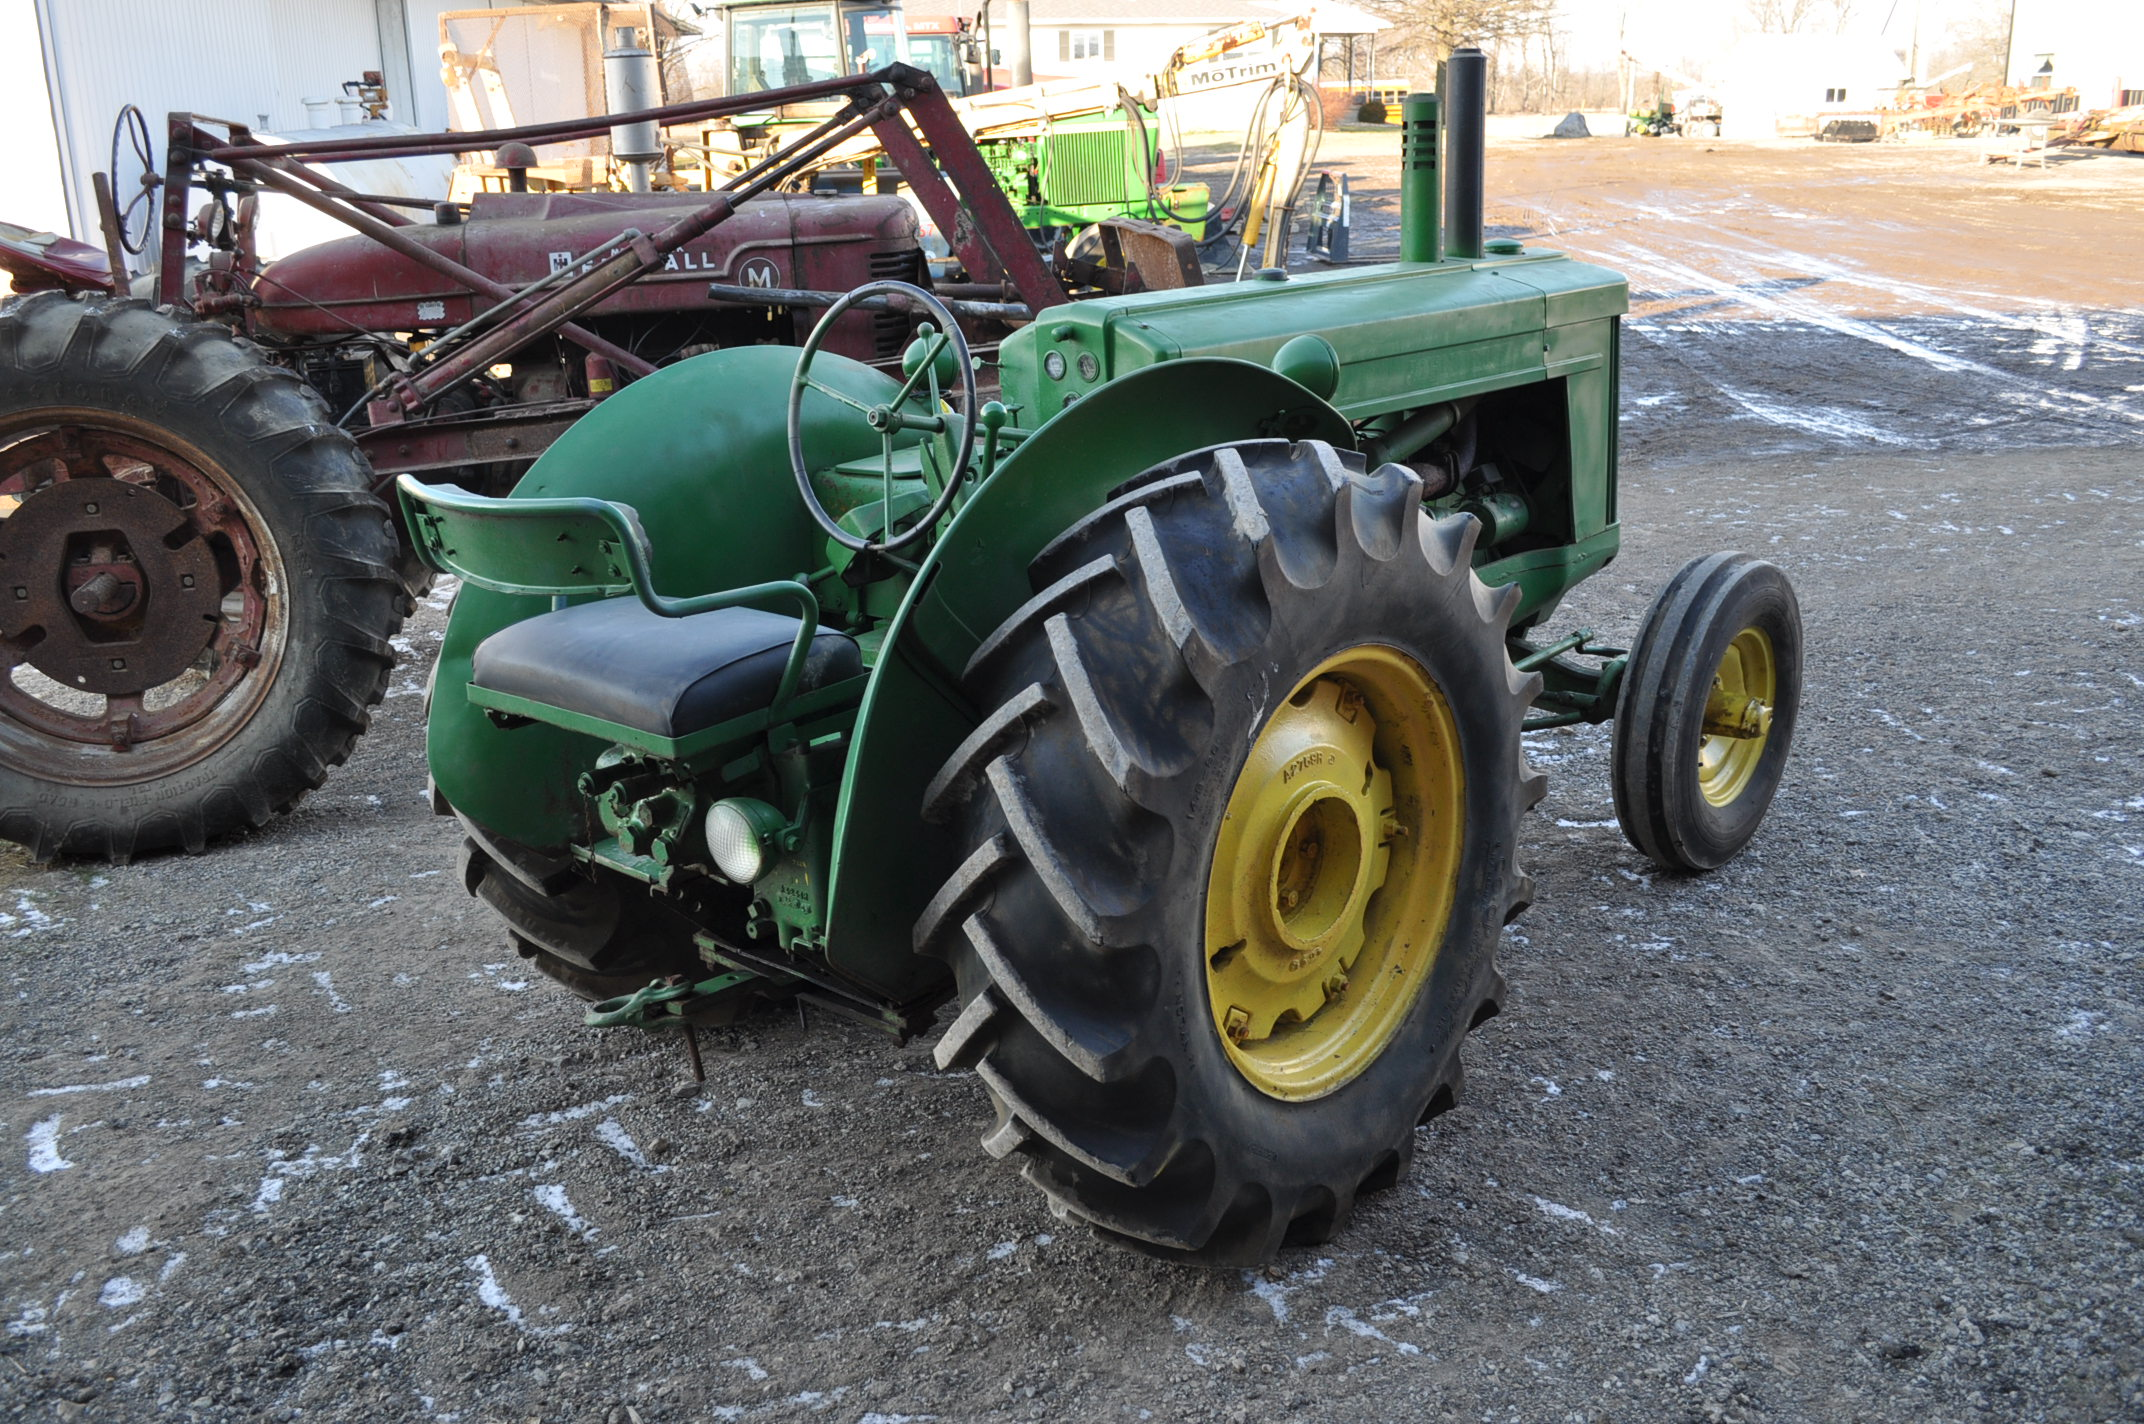 John Deere AR tractor, styled, 14.9-26 rear, 6.50-16 front, wide front, fenders, gasoline, single - Image 3 of 12